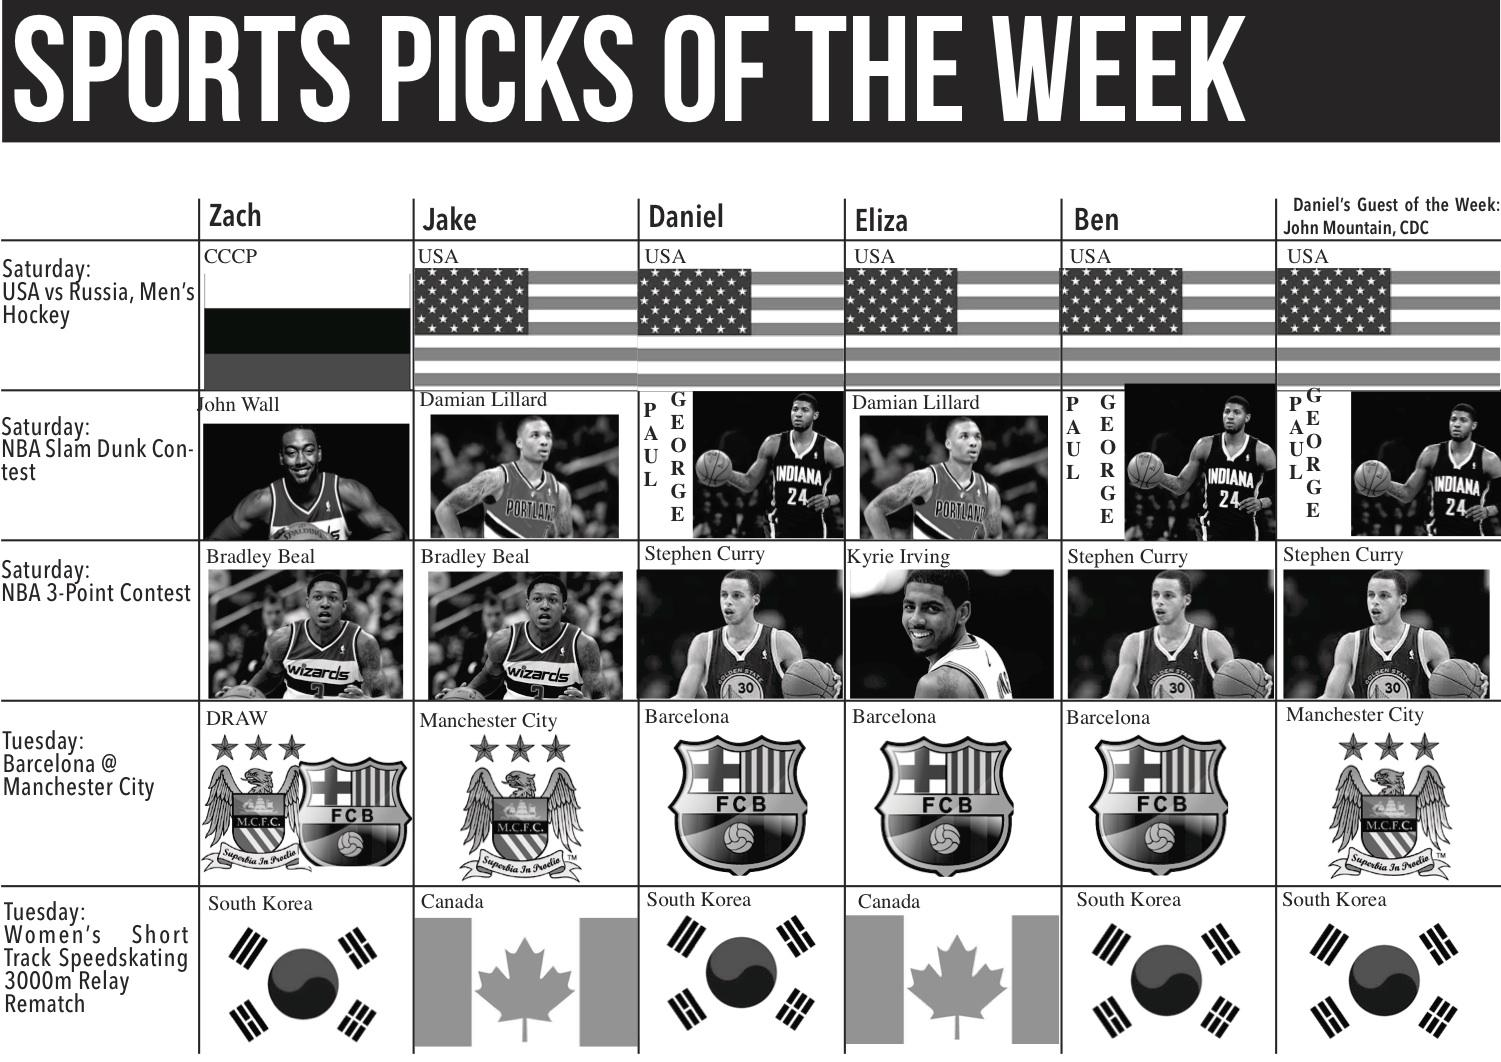 Sports Picks: Week of 2/14/14